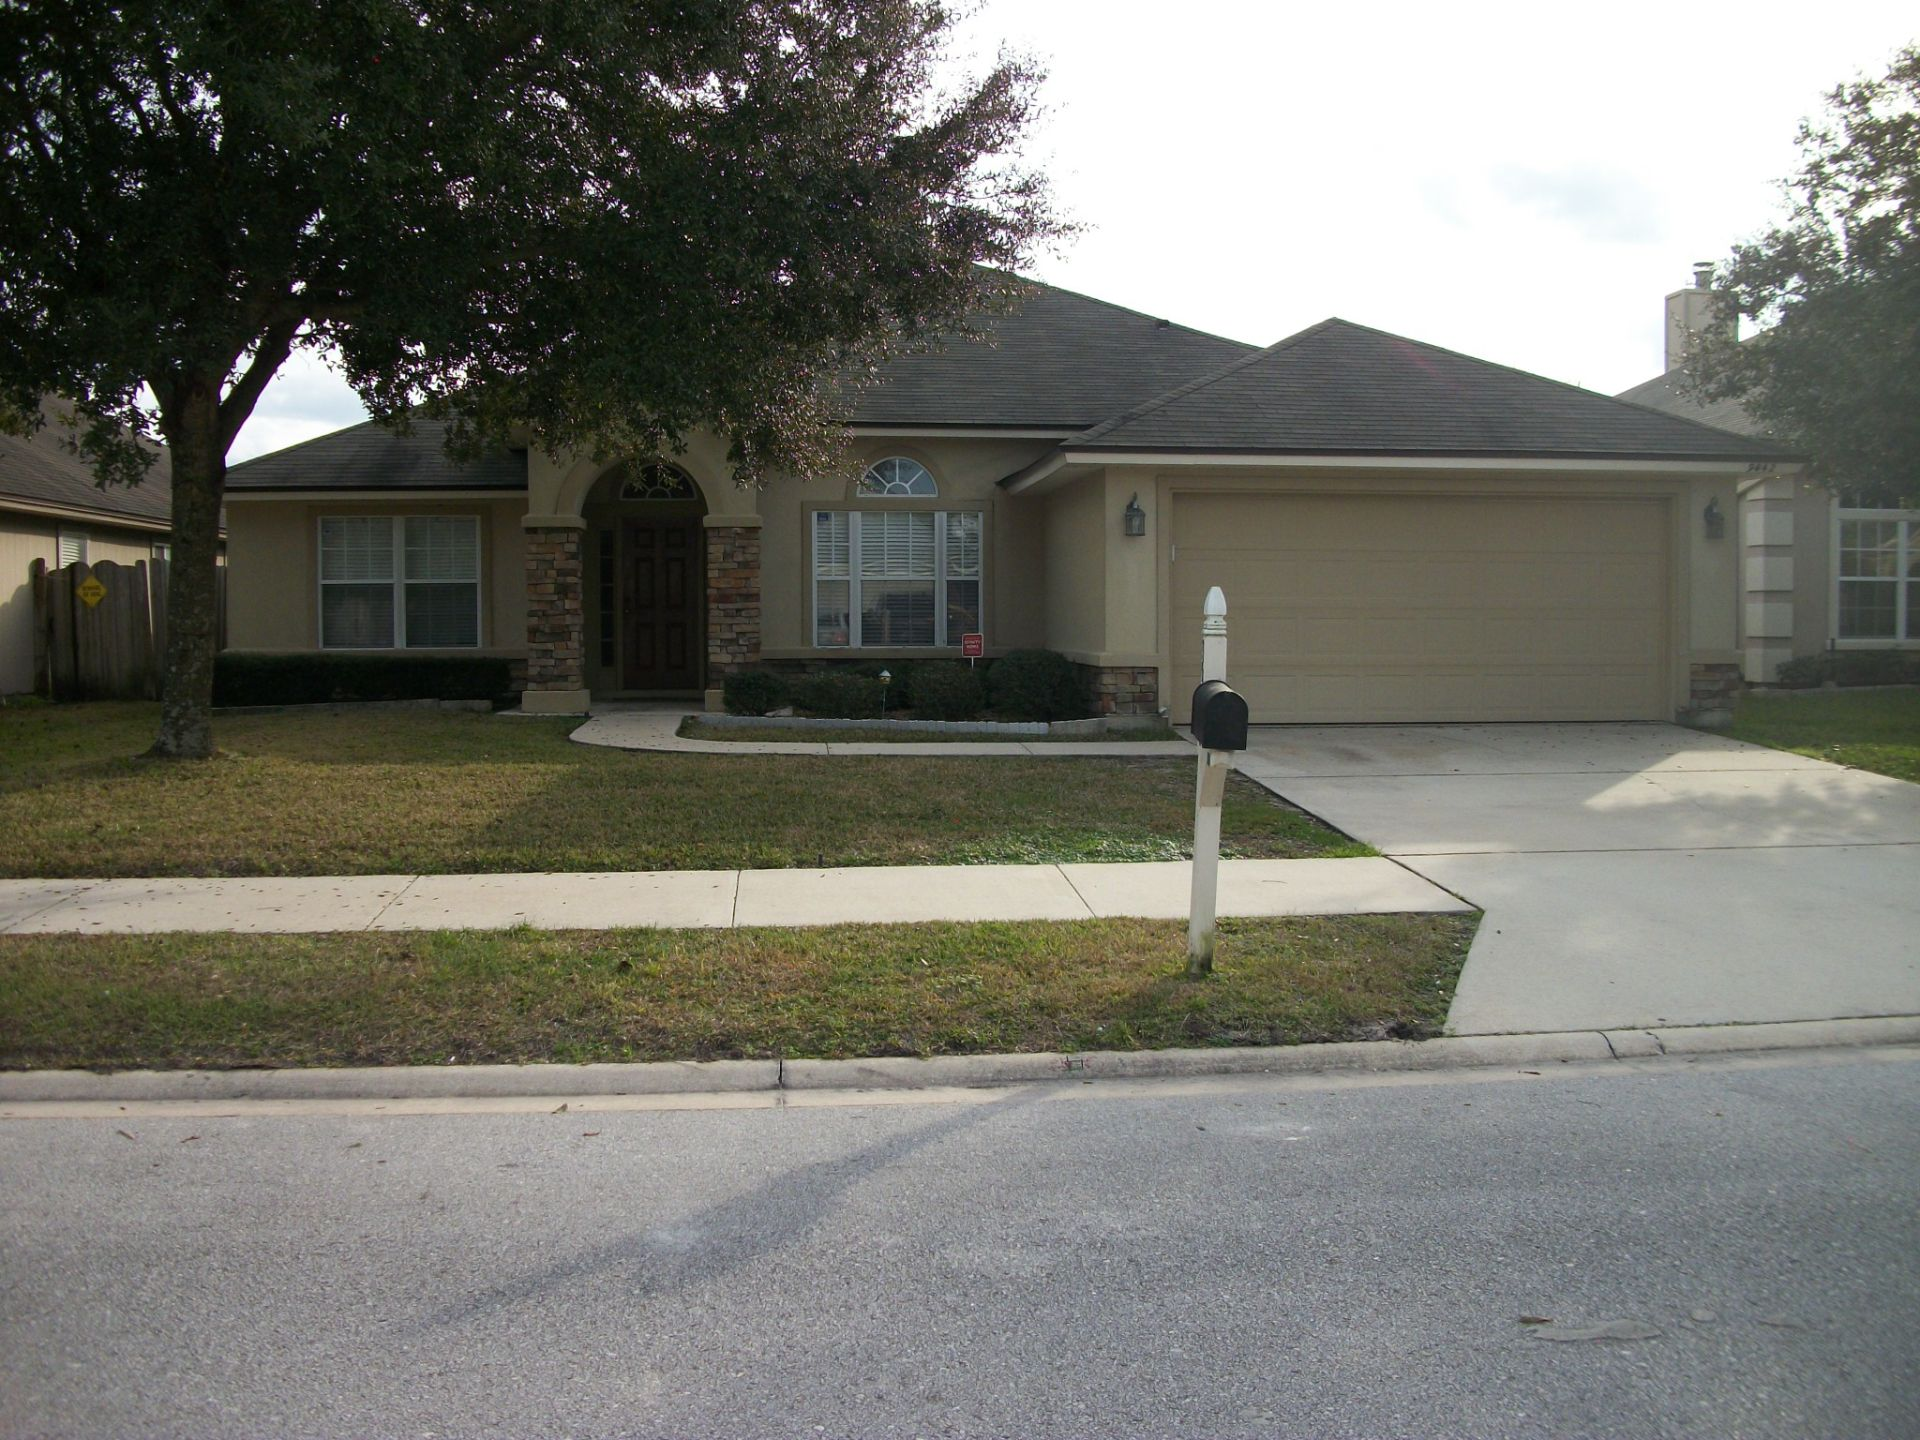 OPEN HOUSE-POOL HOME-NO CDD FEES-9442 HUNSTON MILL LN.,JAX.,FL 32244-SAT, 1/28-11:00-1:00